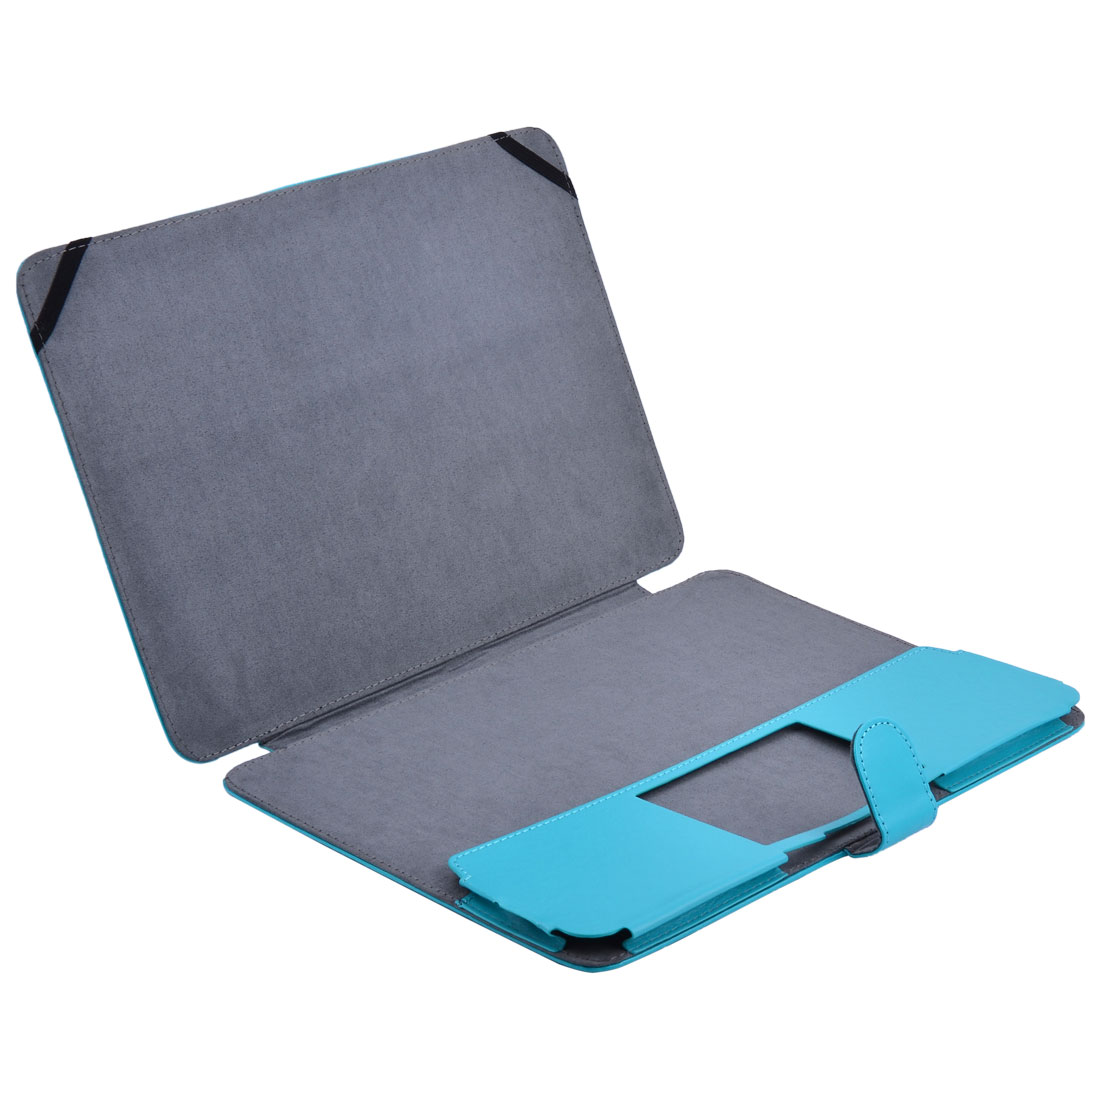 Laptop PU Leather Screen Skin Folio Sleeve Case Cover Blue for MacBook Pro 13.3 Inch